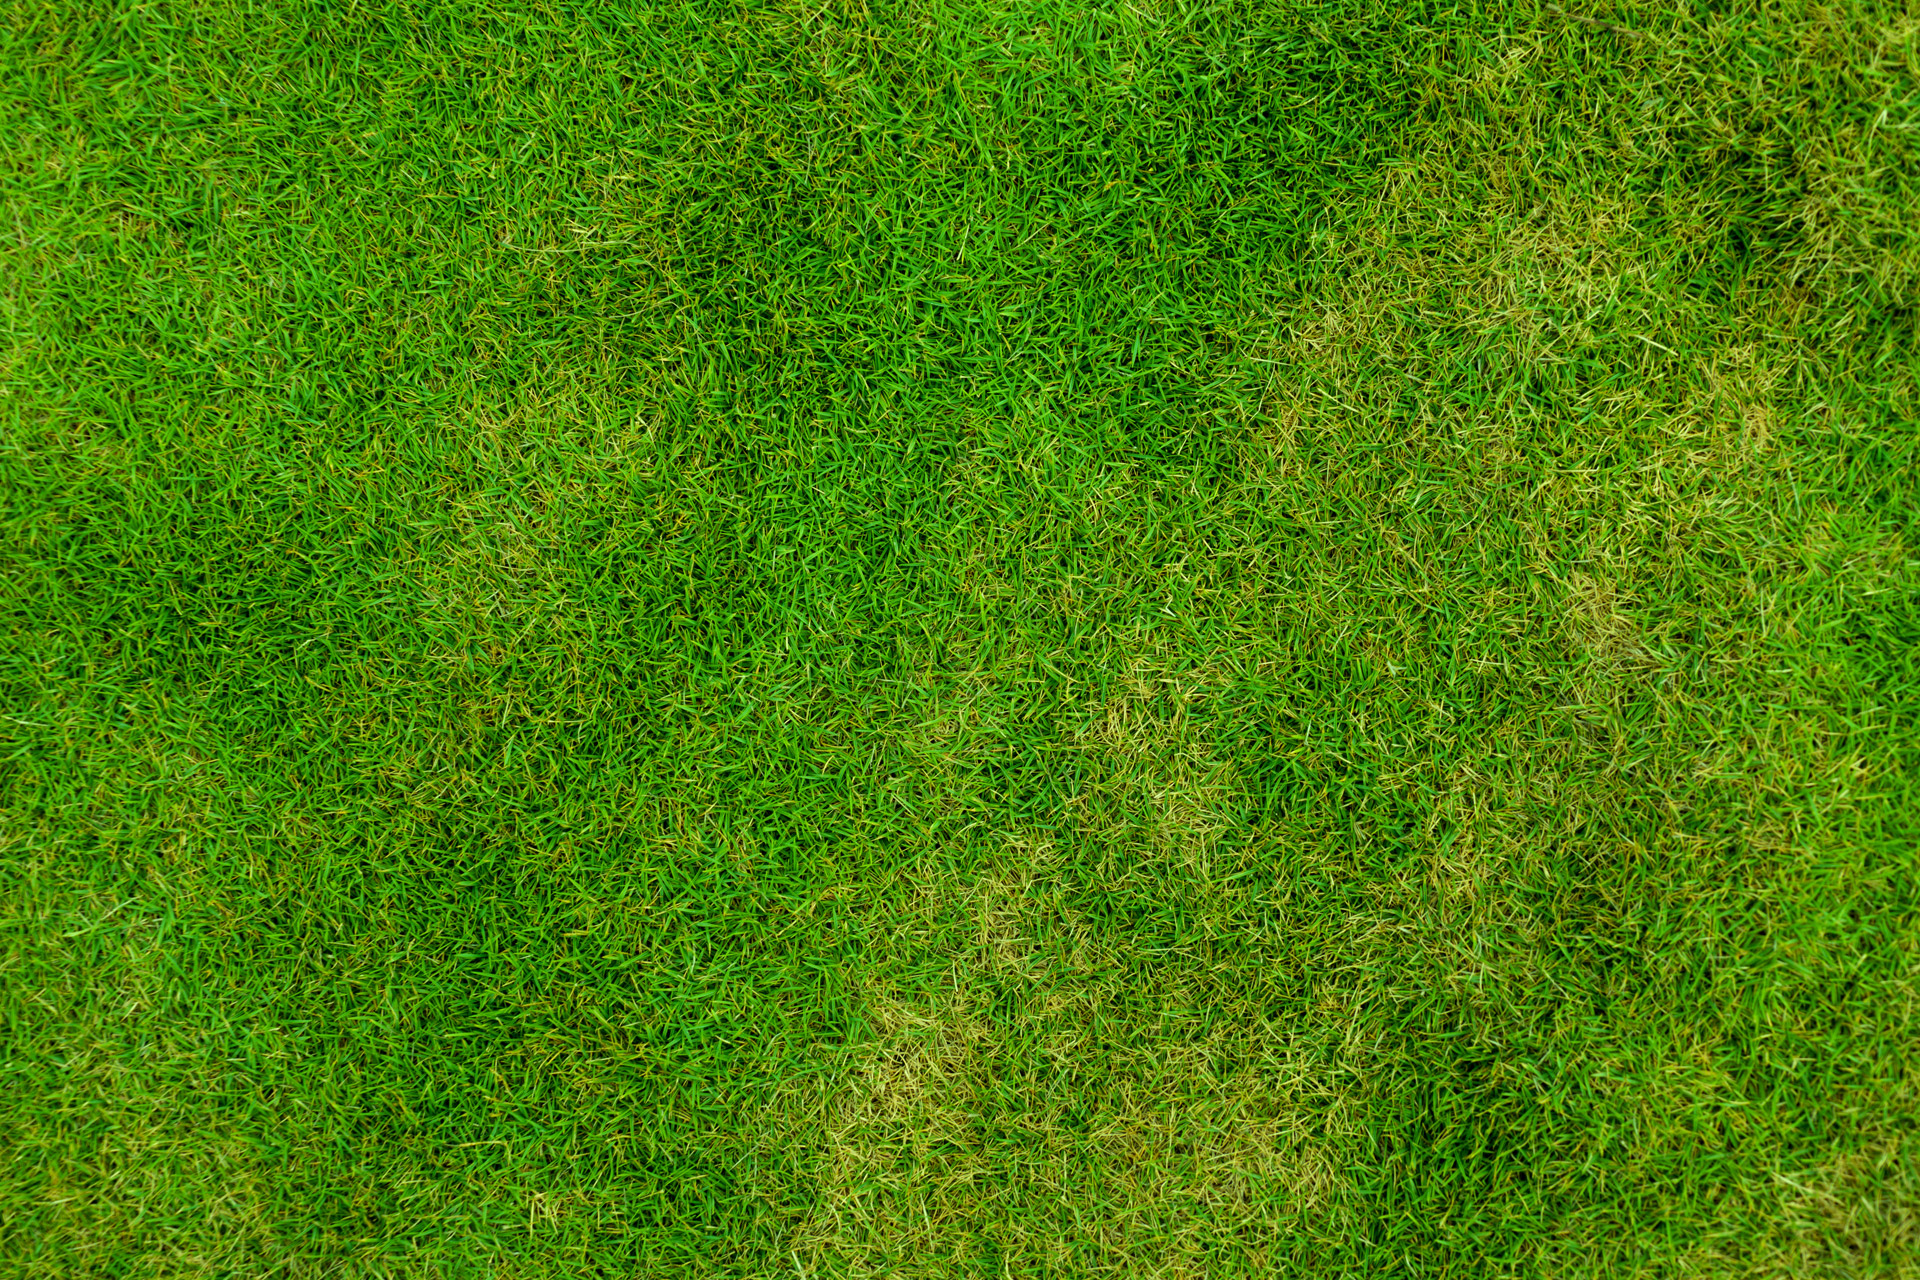 grass background texture - photo #2